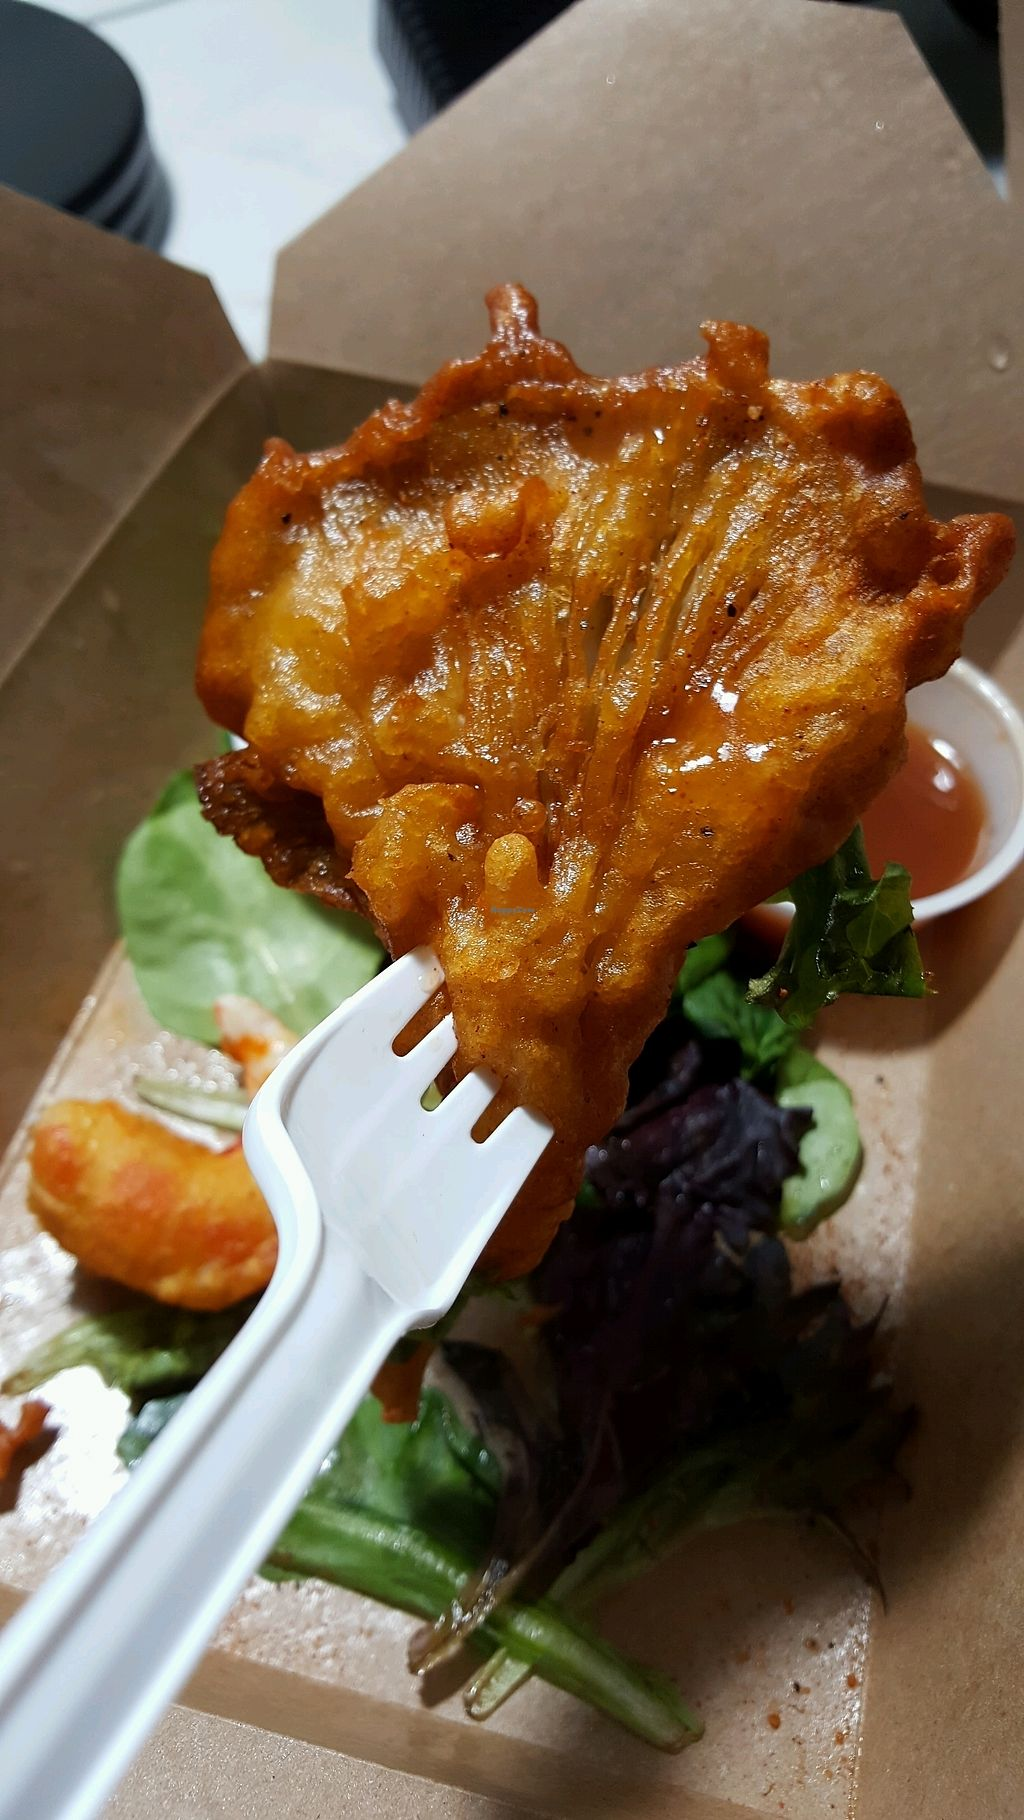 """Photo of Vegetarian Haven  by <a href=""""/members/profile/Brit87"""">Brit87</a> <br/>tempura oyster mushroom  <br/> February 1, 2018  - <a href='/contact/abuse/image/3237/353367'>Report</a>"""